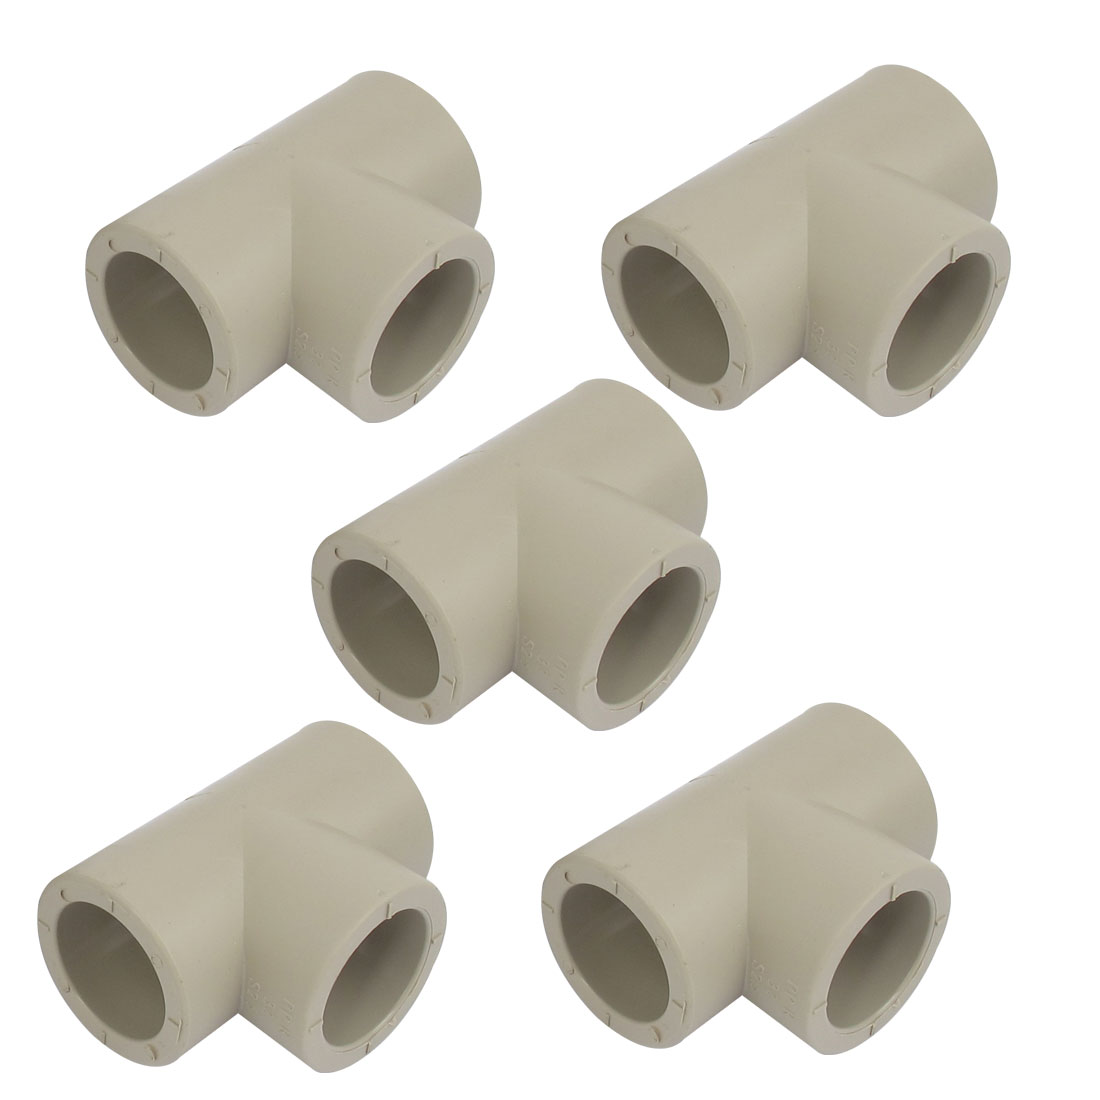 Three Way PPR Pipe Fitting Tee Connector Adapter Gray 32mm 5 Pcs